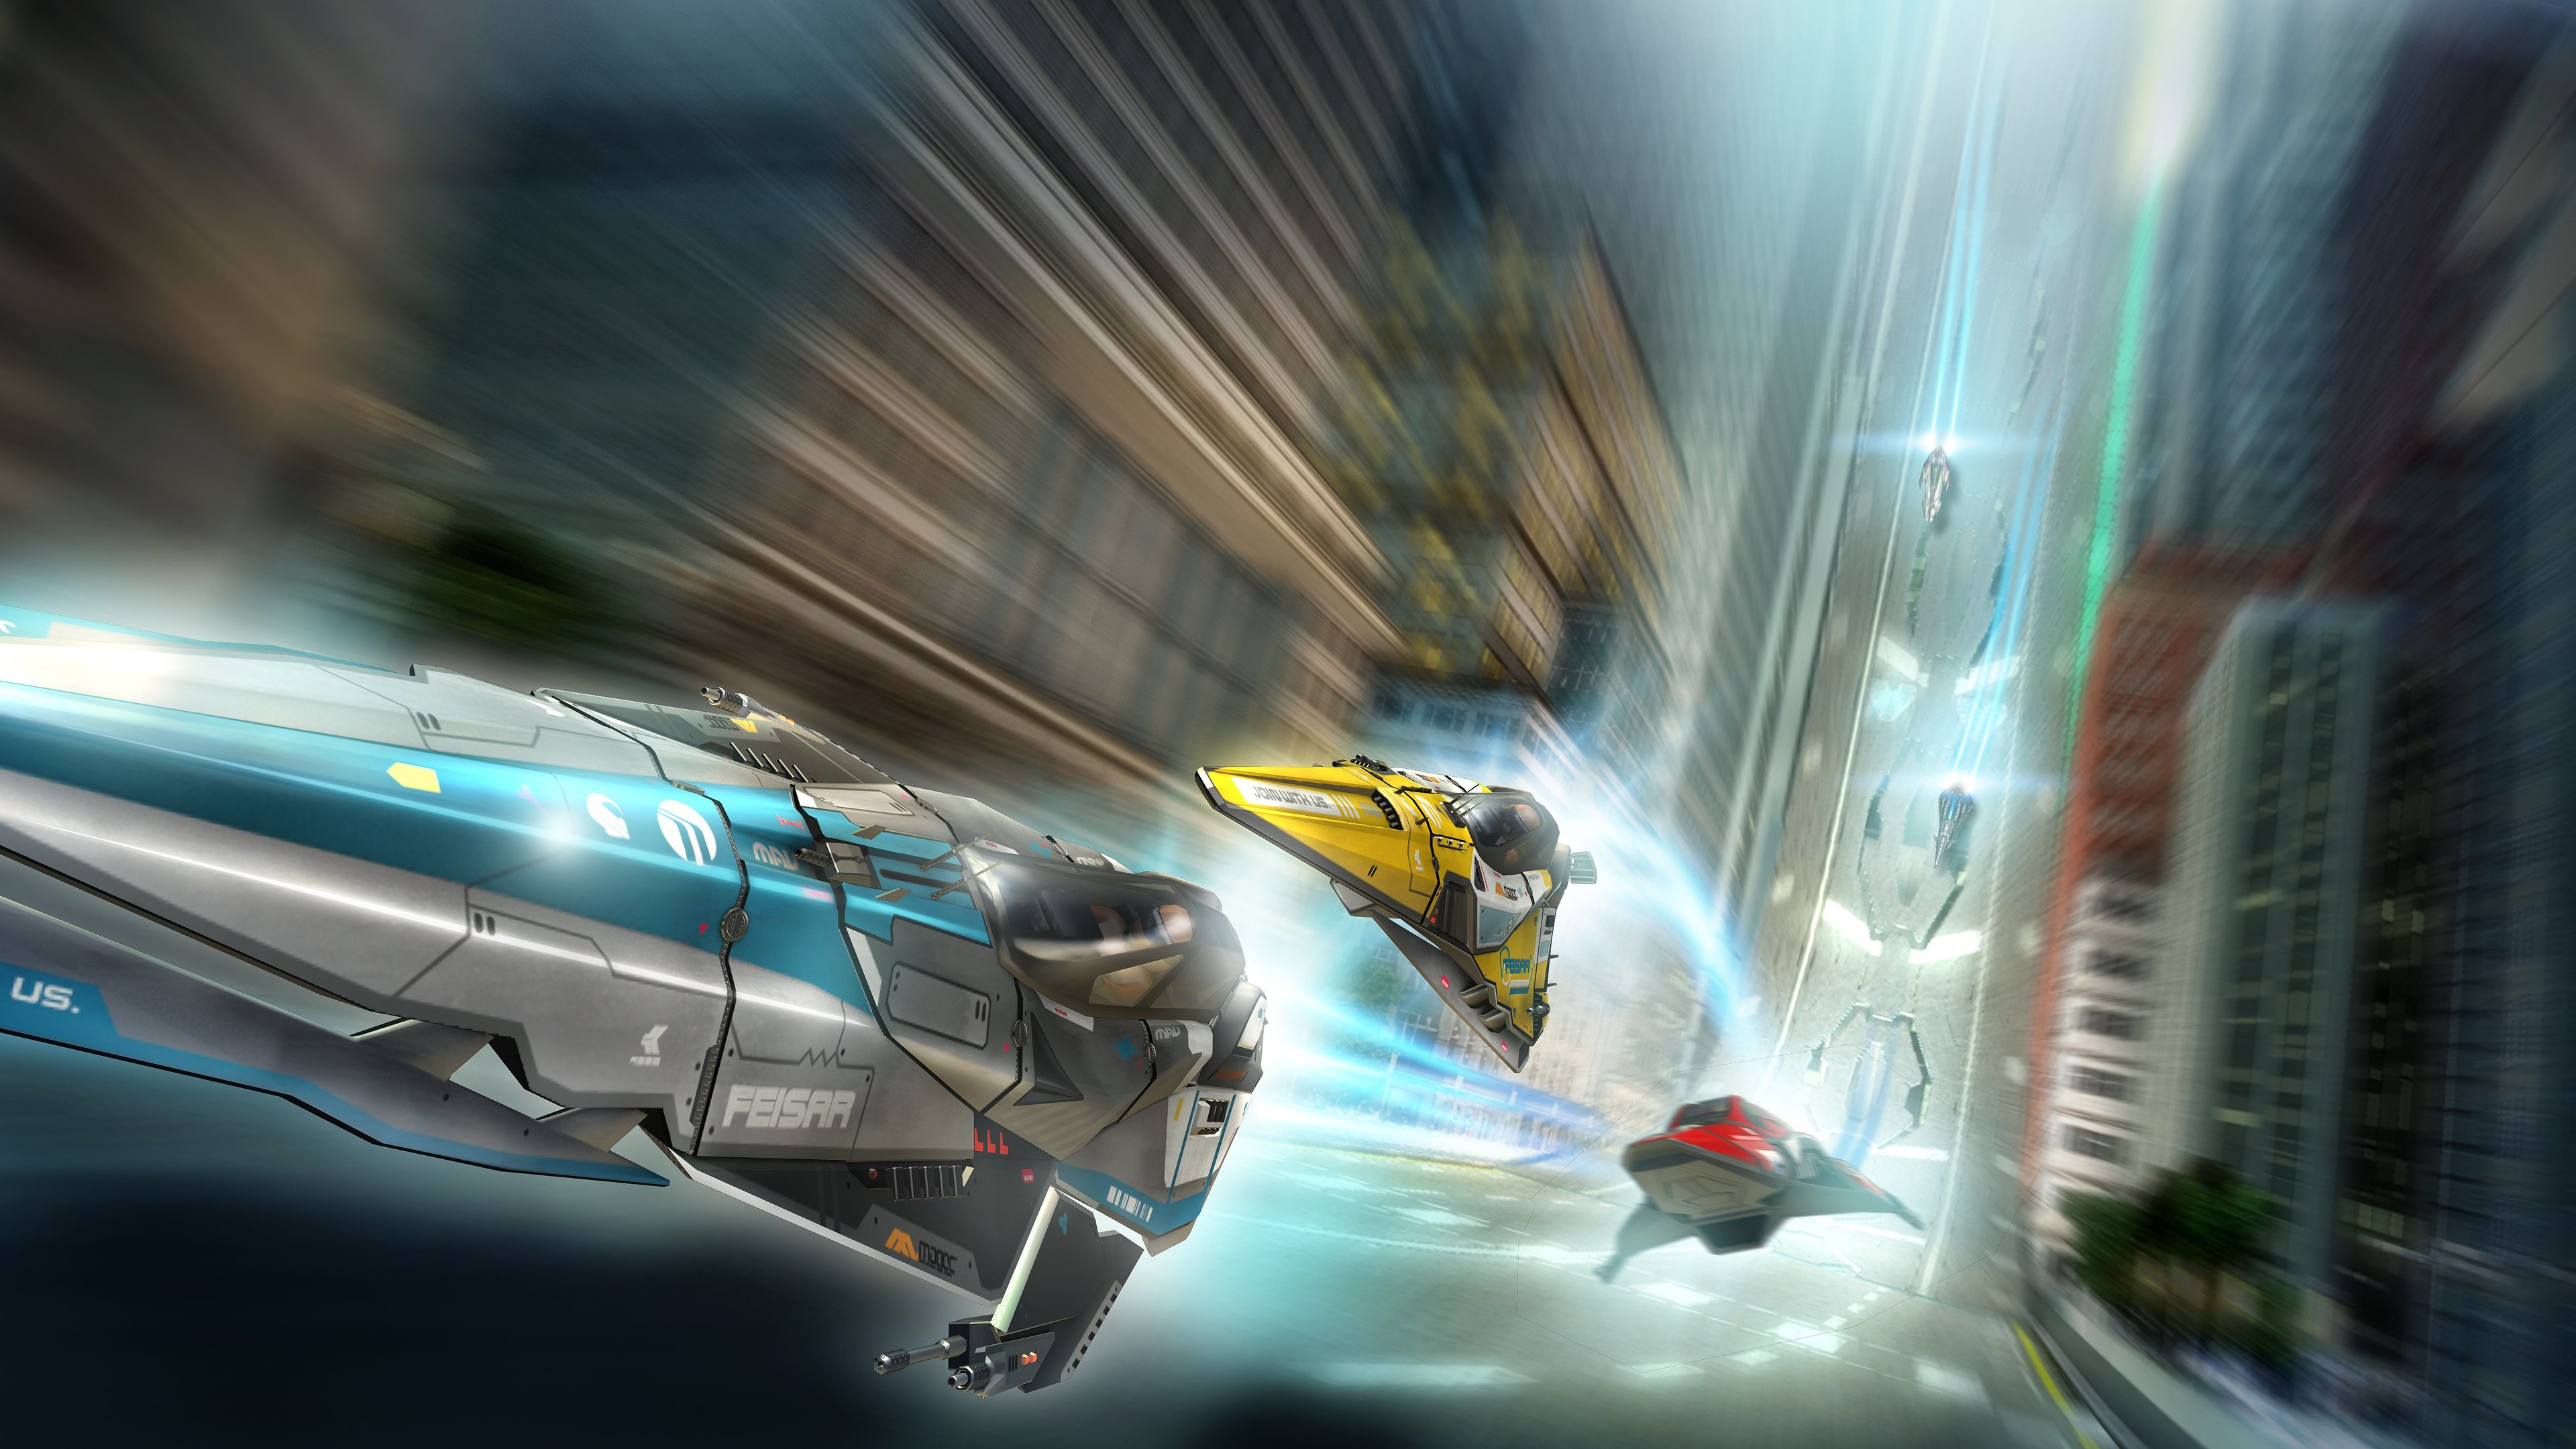 wipeout 2048 1537692836 - Wipeout 2048 - hd-wallpapers, games wallpapers, 4k-wallpapers